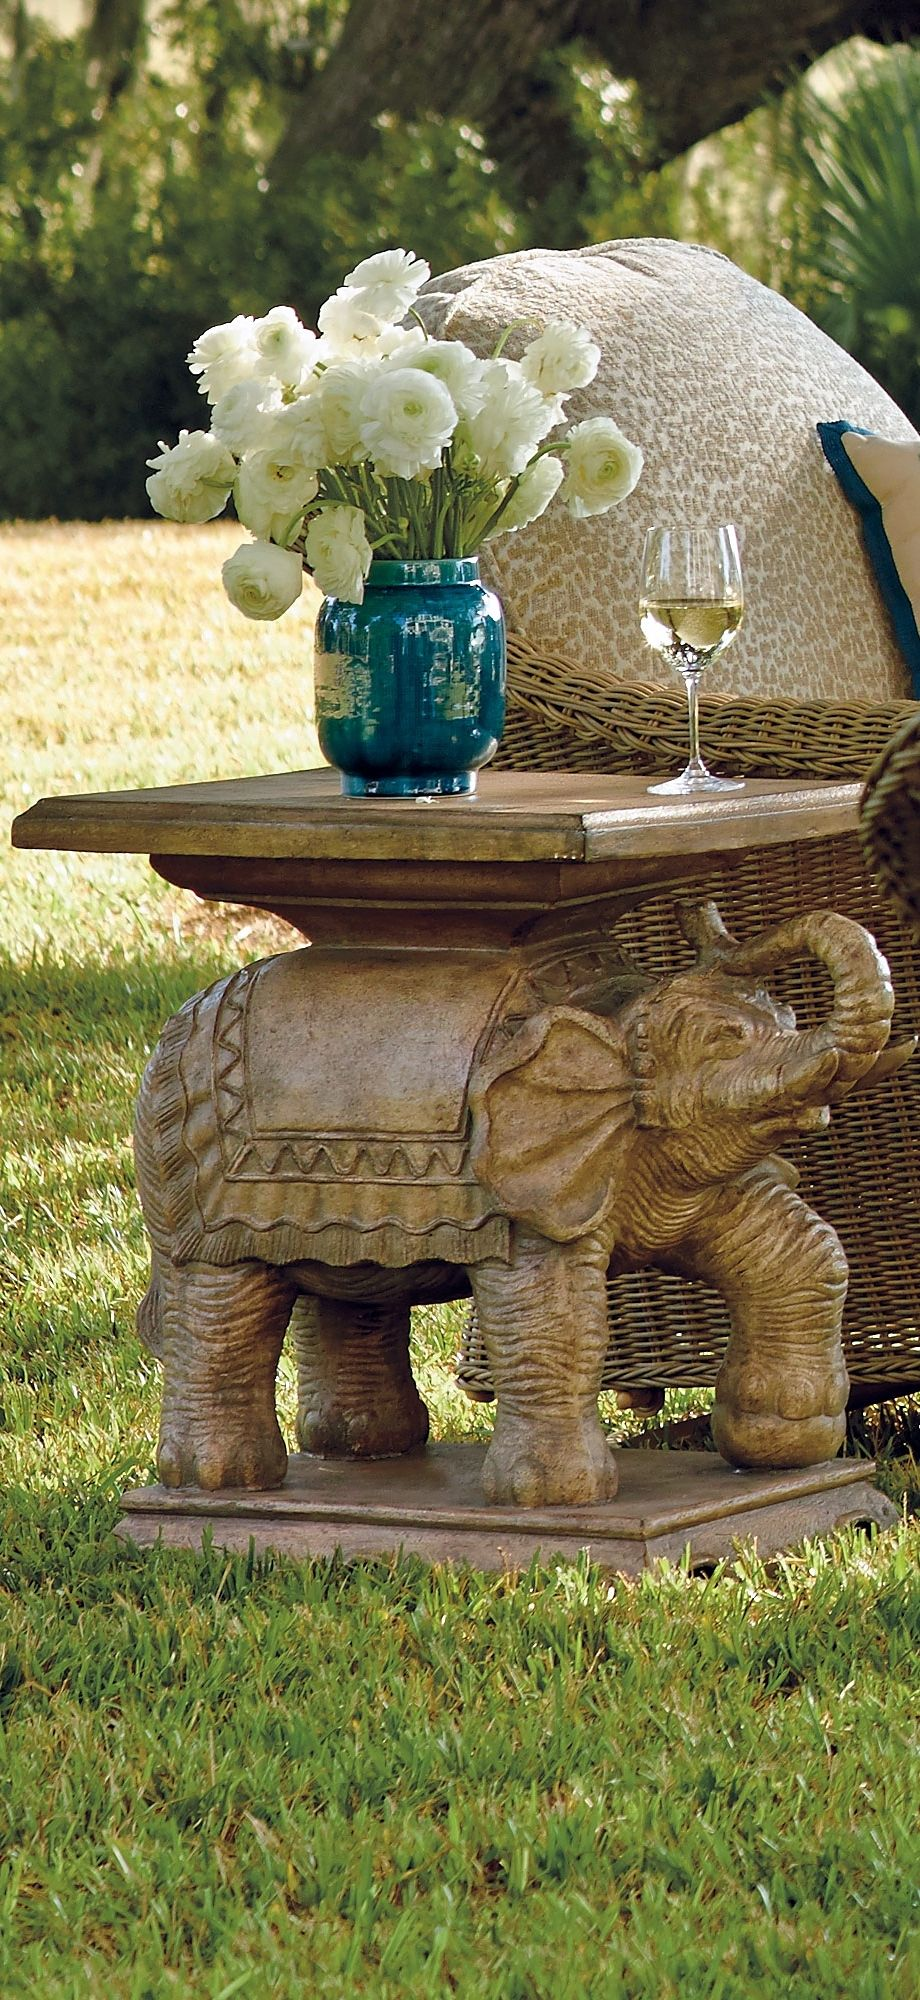 With an elephant's every wrinkle captured in dimensional detail, our Elephant End Table delivers dramatic design in any outdoor space. | Frontgate: Live Beautifully Outdoors